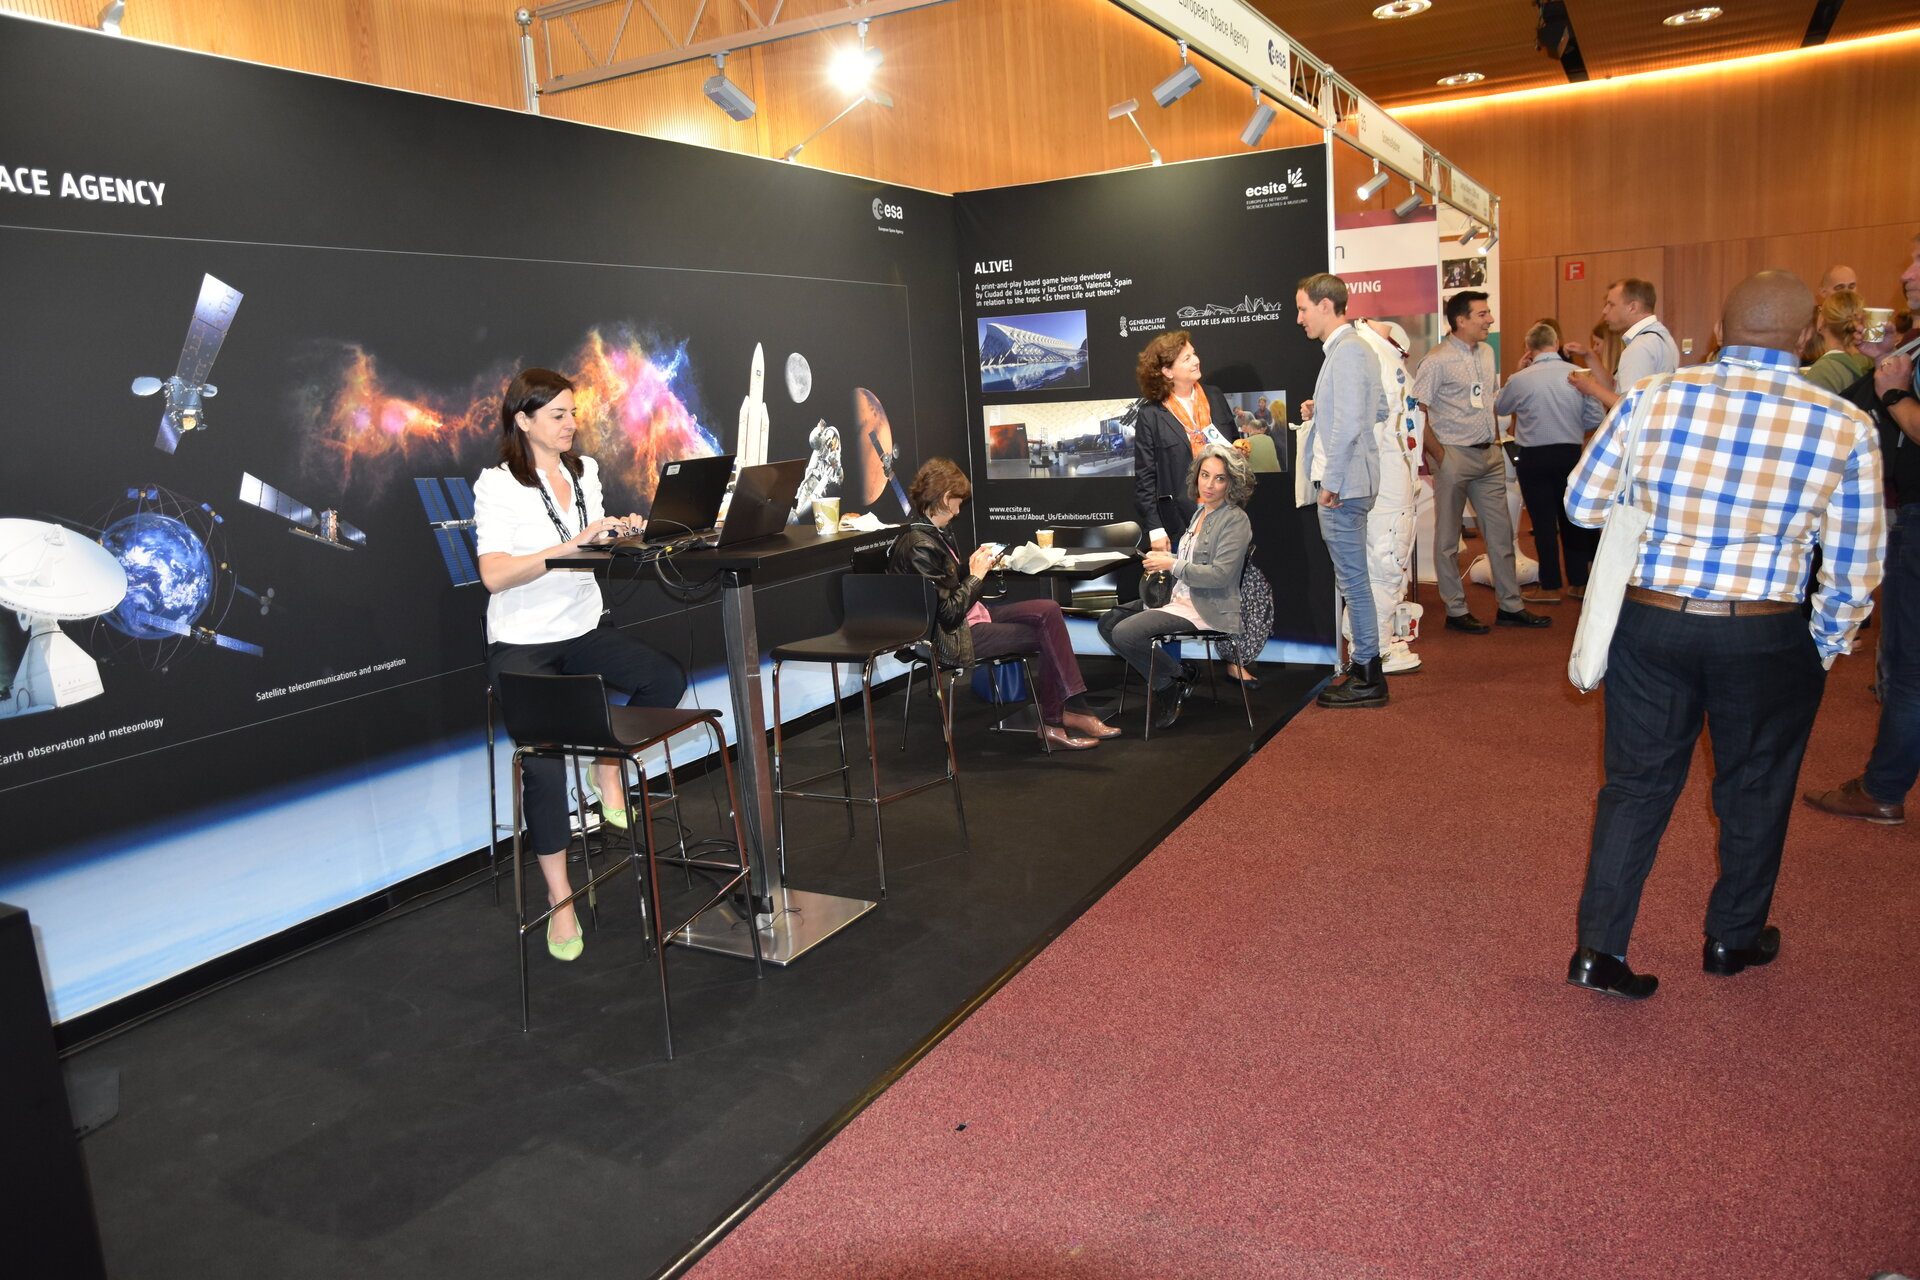 The ESA booth at the Ecsite Annual Conference 2018